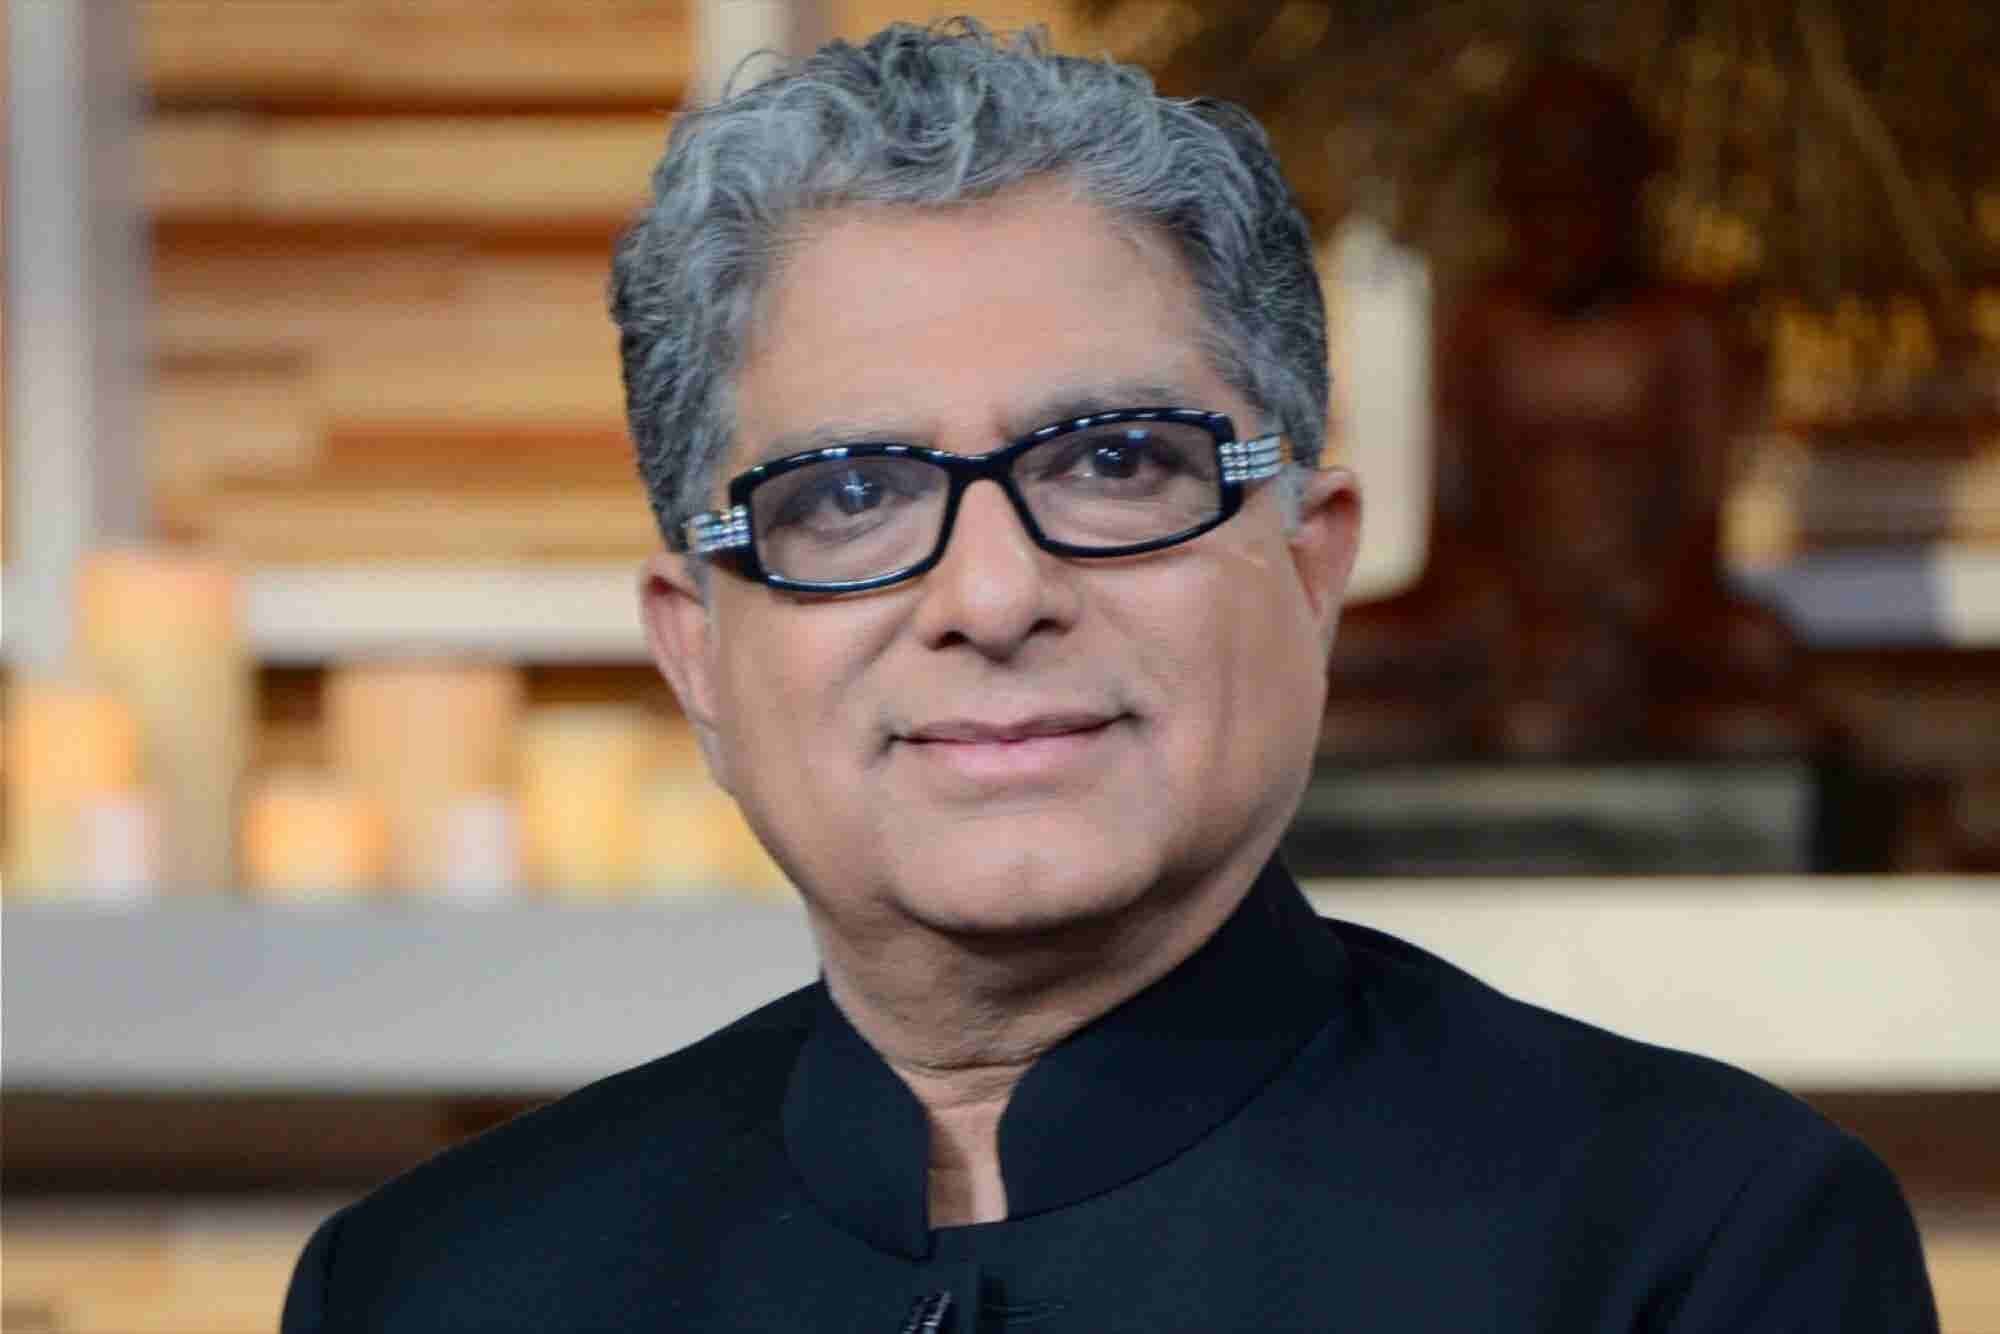 Deepak Chopra's 3 Quick Tips for Dealing With Toxic Bosses